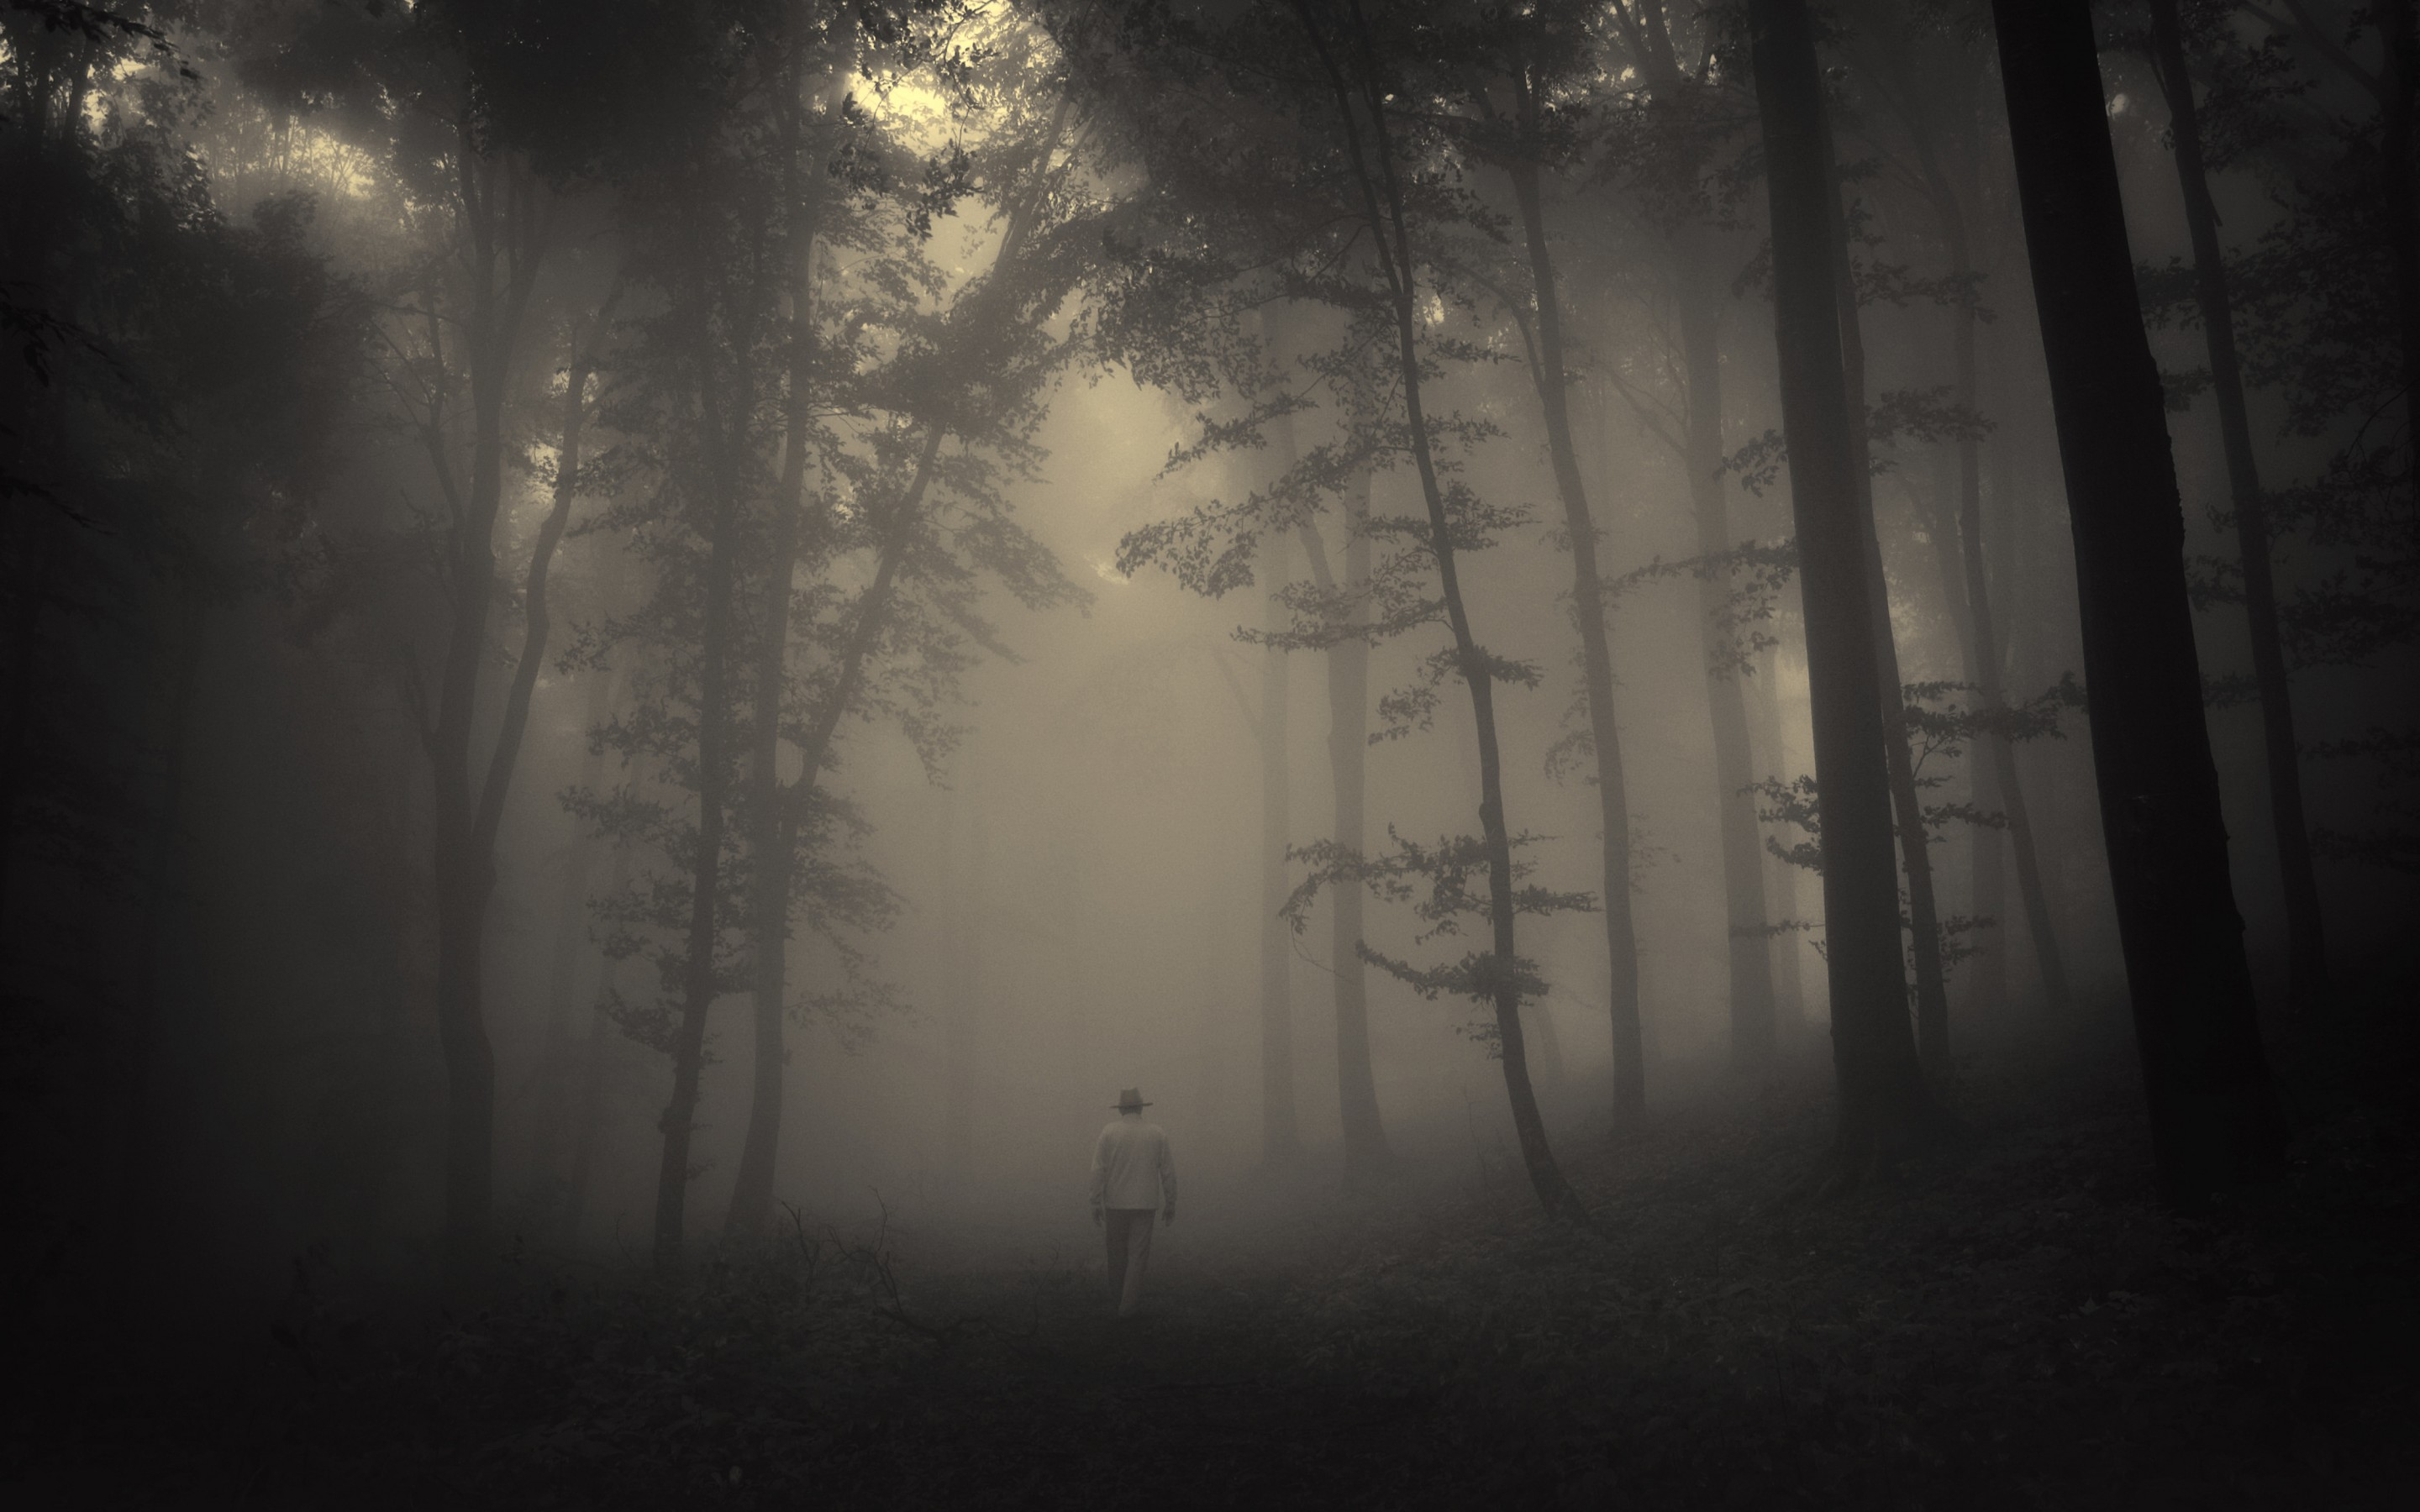 forest trees creepy nature landscape misty lonely old man road mood